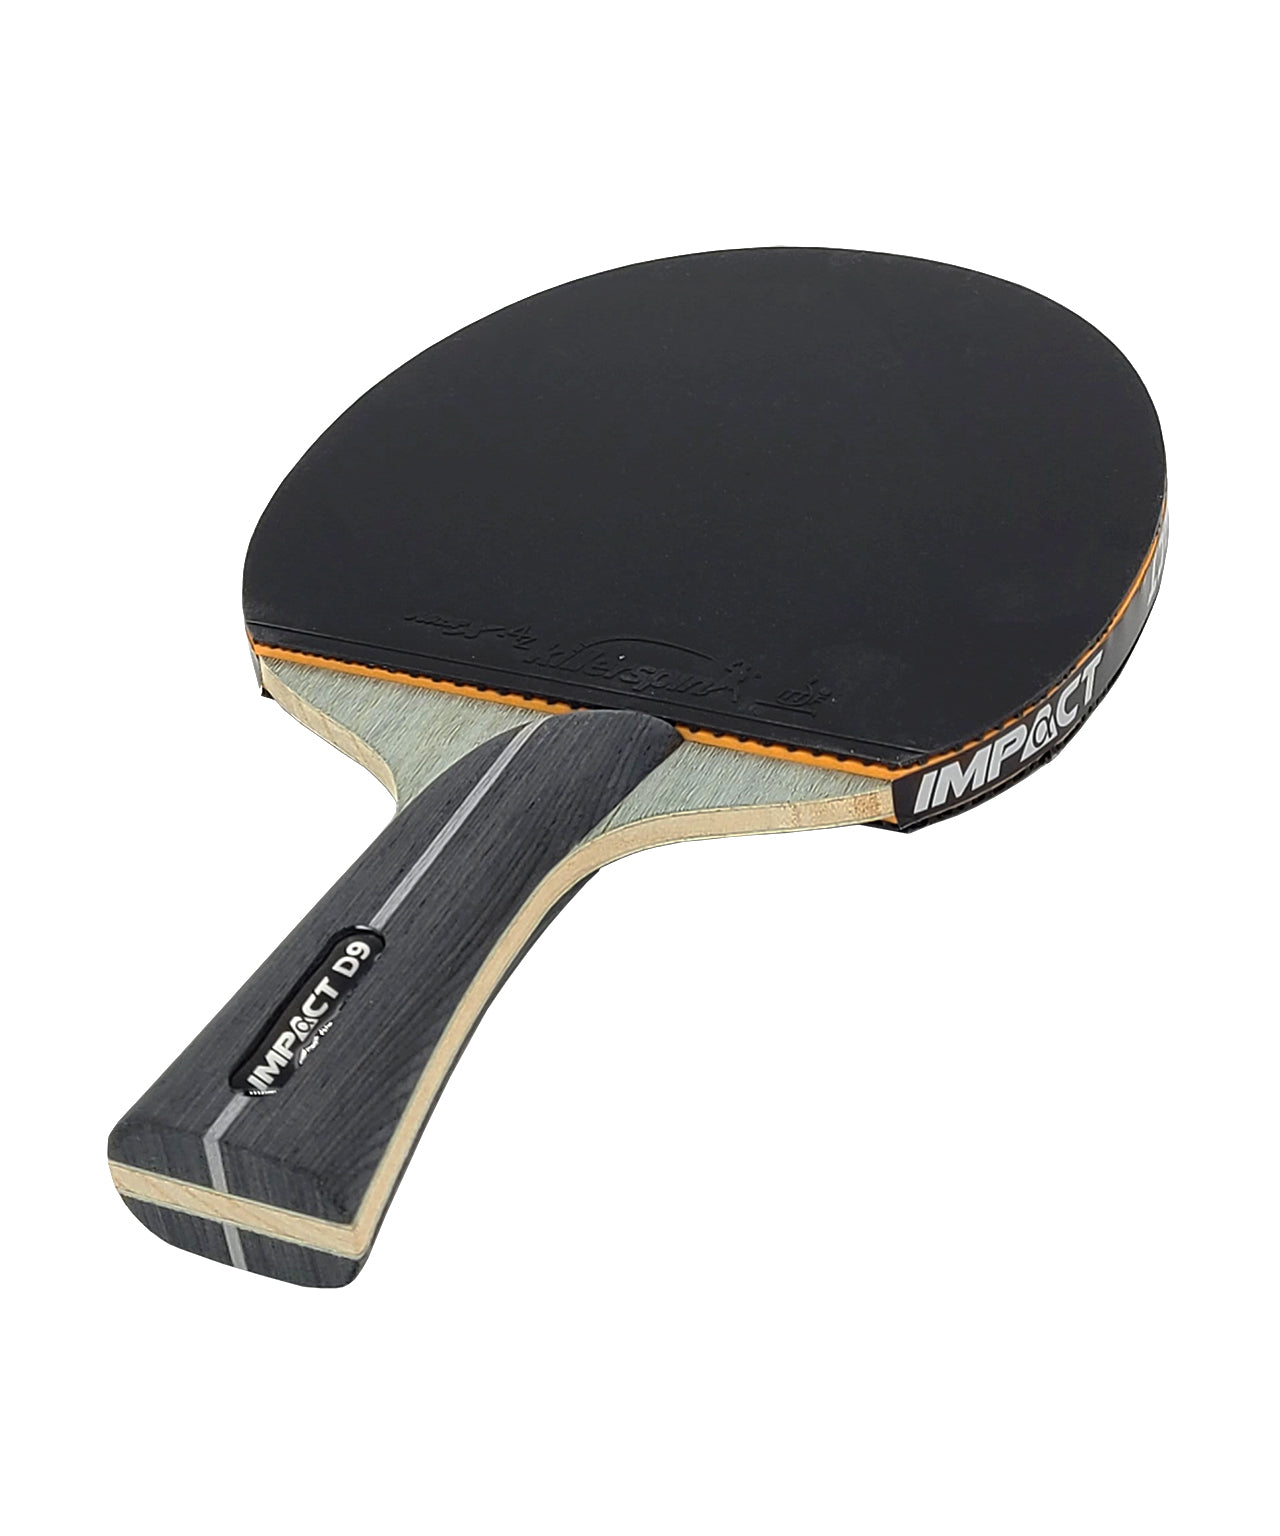 killerspin-ping-pong-paddle-impact-D9-smart-grip-memory-book-racket-rubber